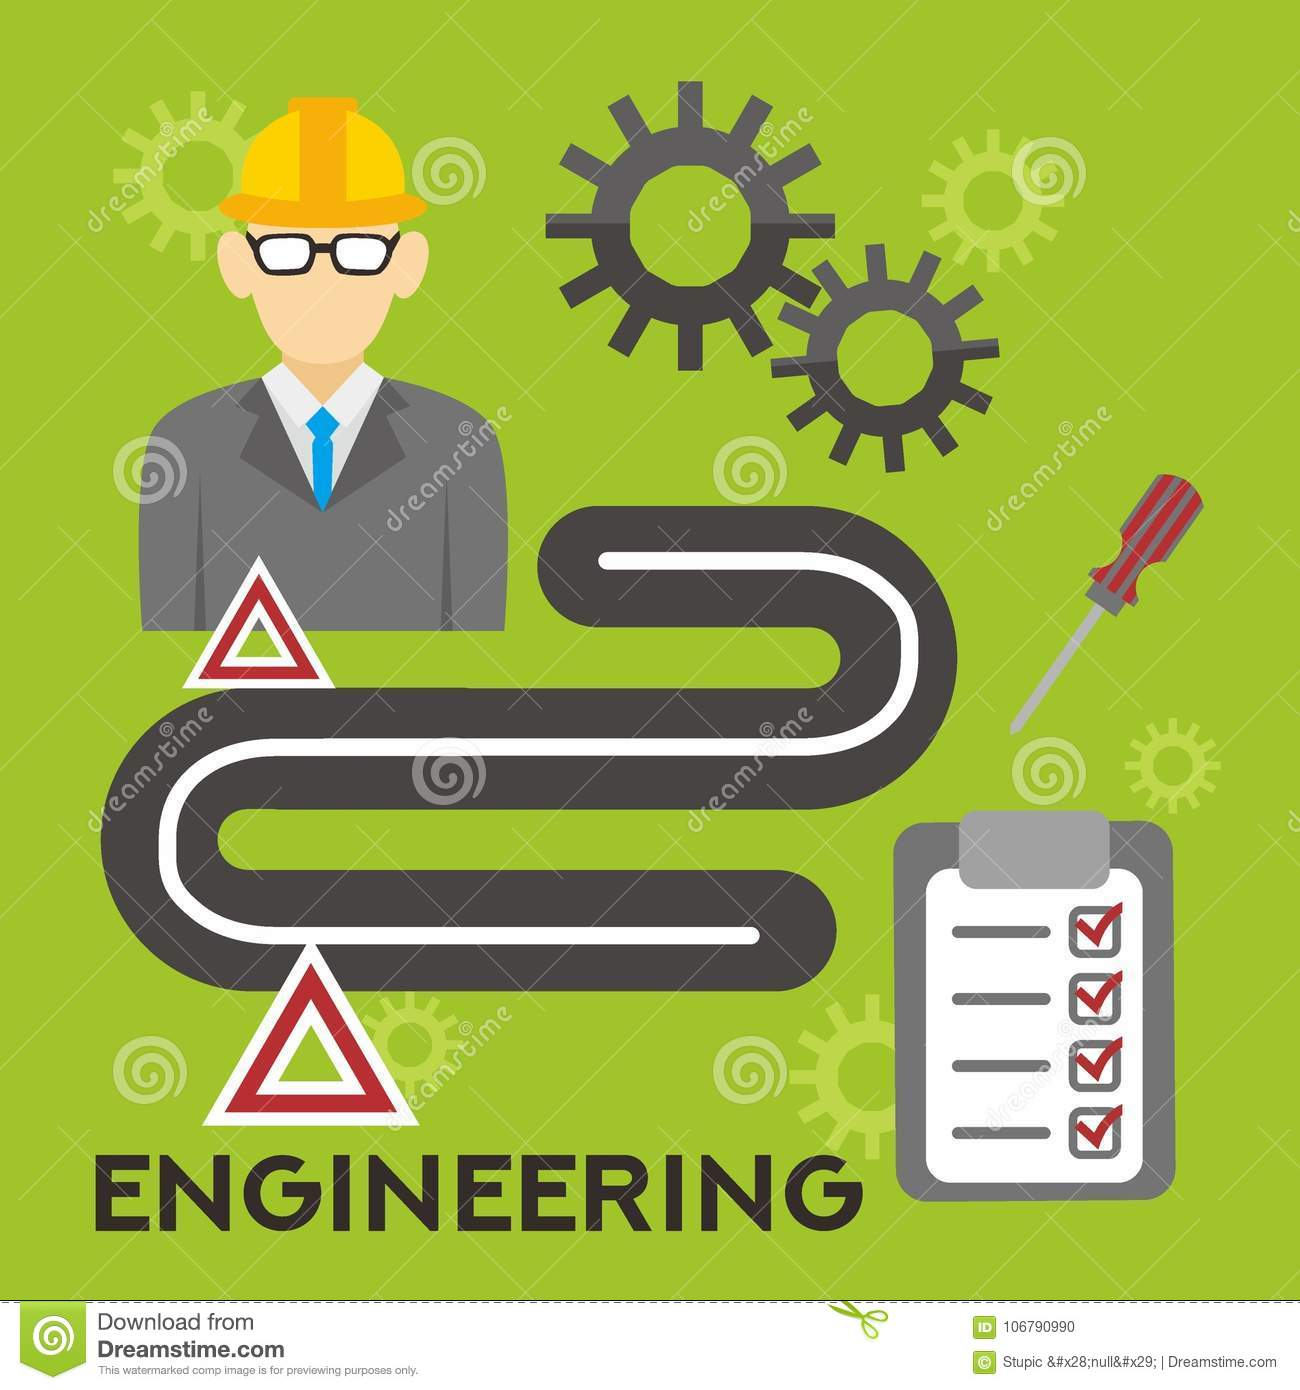 Engineering illustration vector art logo template and illustration download comp malvernweather Images